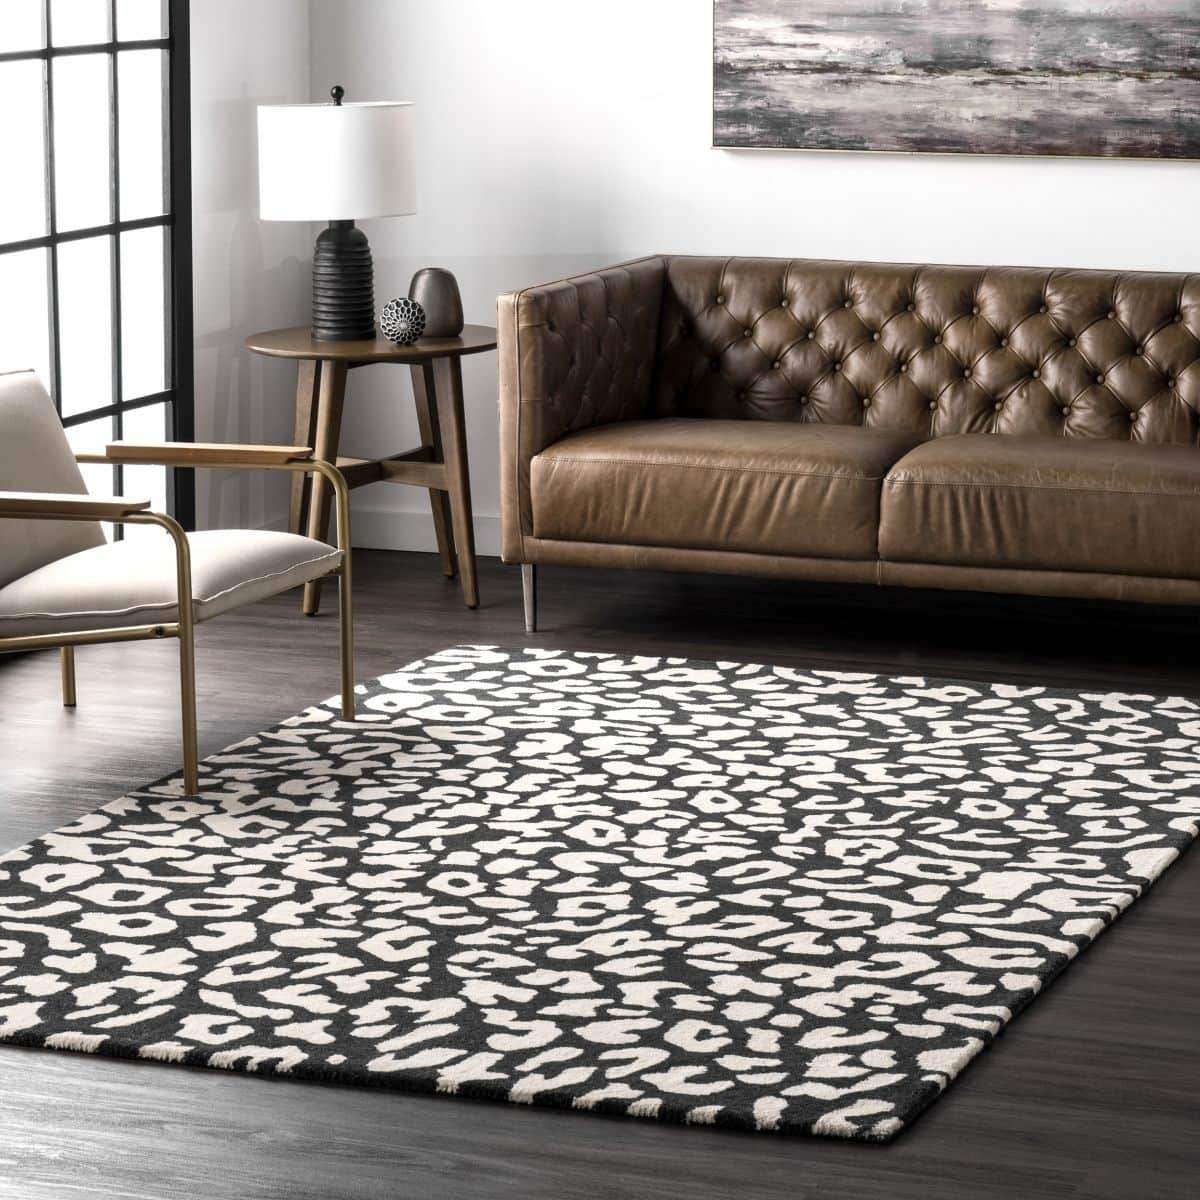 Black and White Leopard Print on Dark Wood for a Bold Statement